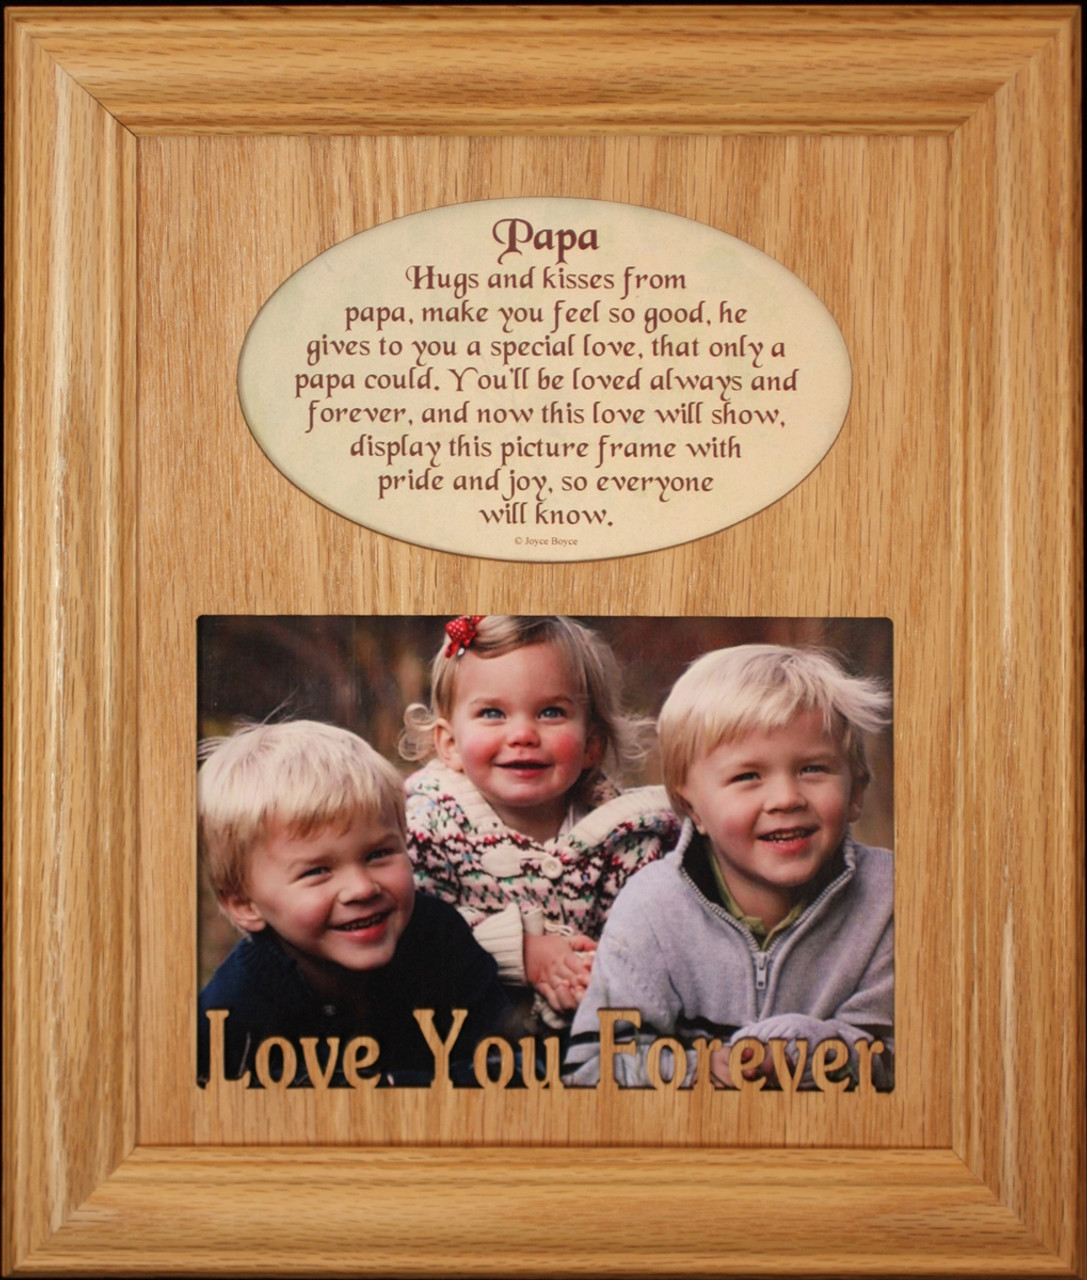 8x10 PAPA Laser Photo & Poetry Frame ~ Holds a Landscape 5x7 Photo ...